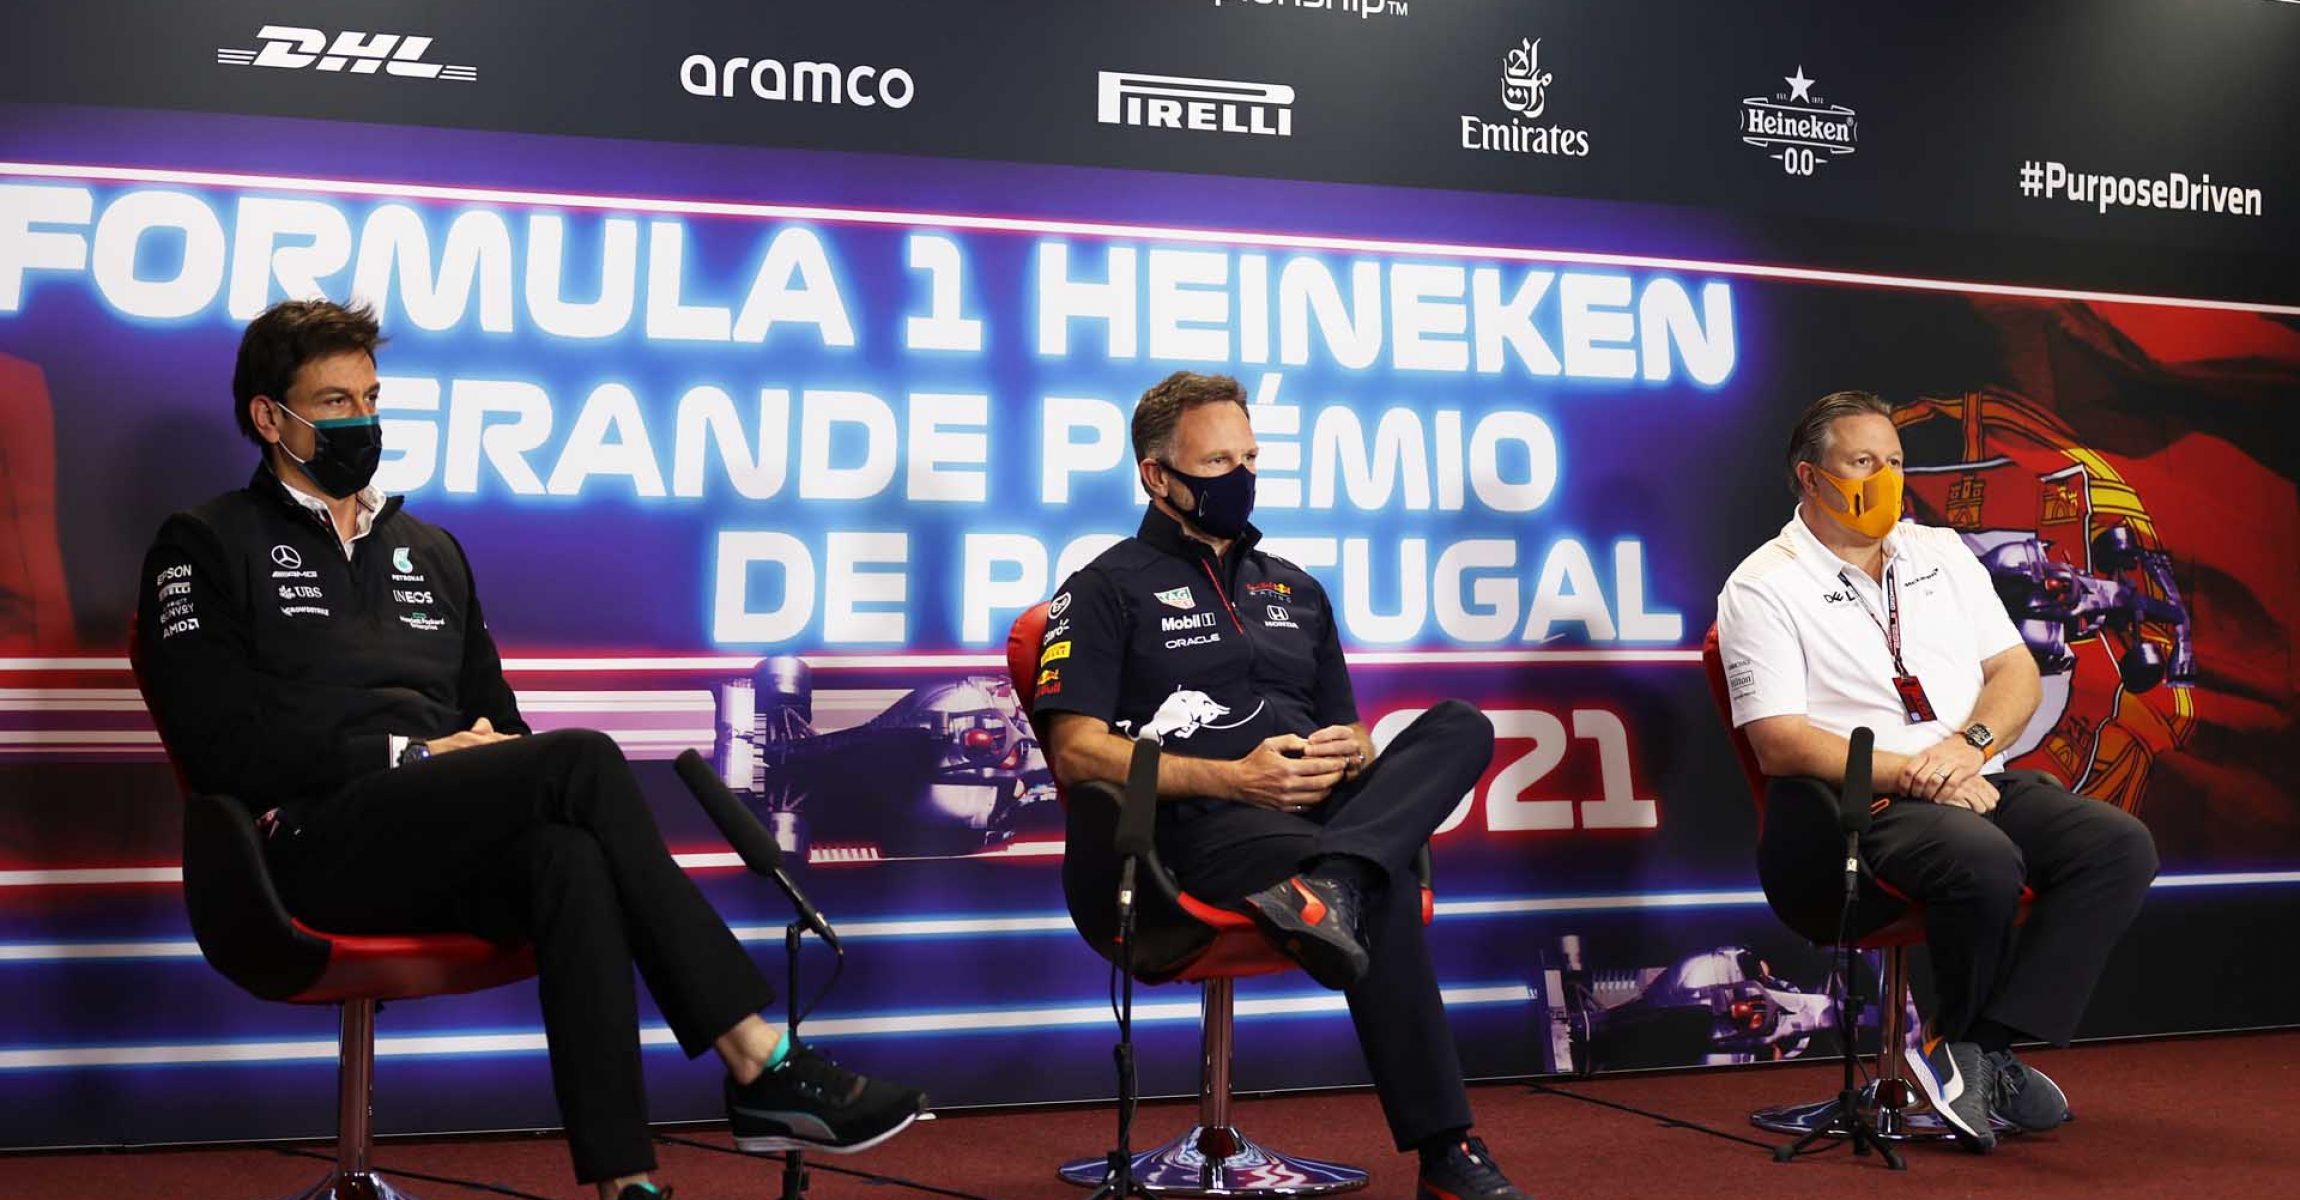 PORTIMAO, PORTUGAL - APRIL 30: Mercedes GP Executive Director Toto Wolff, Red Bull Racing Team Principal Christian Horner and McLaren Chief Executive Officer Zak Brown talk in the Team Principals Press Conference during practice ahead of the F1 Grand Prix of Portugal at Autodromo Internacional Do Algarve on April 30, 2021 in Portimao, Portugal. (Photo by Lars Baron/Getty Images)